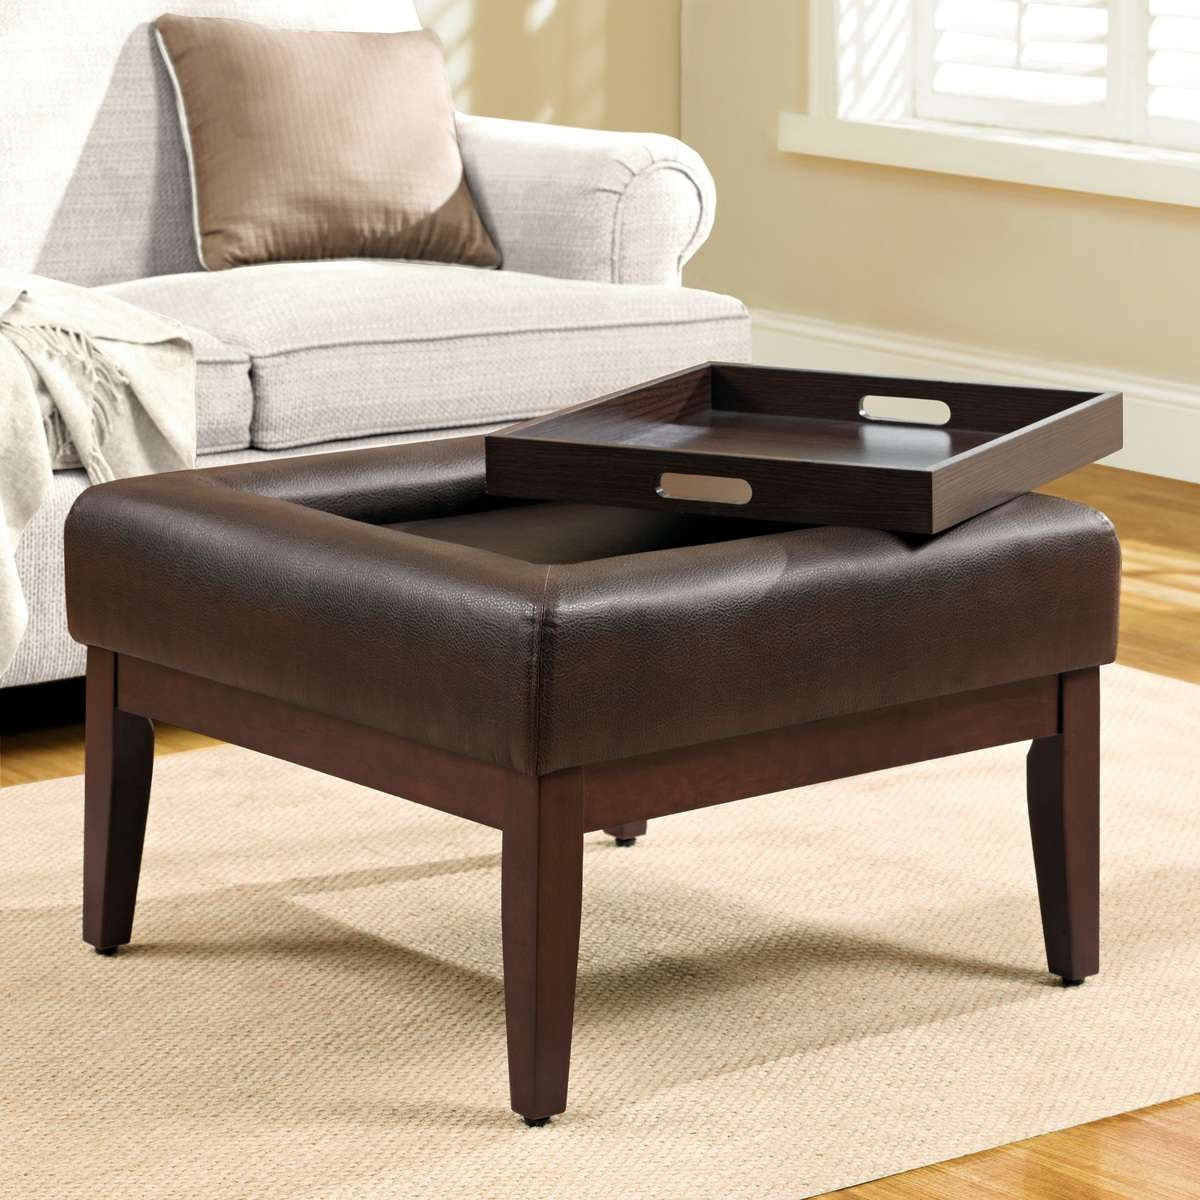 Brown Leather Coffee Table Ottoman 2018 Popular Brown Leather Ottoman Coffee Tables With Storages